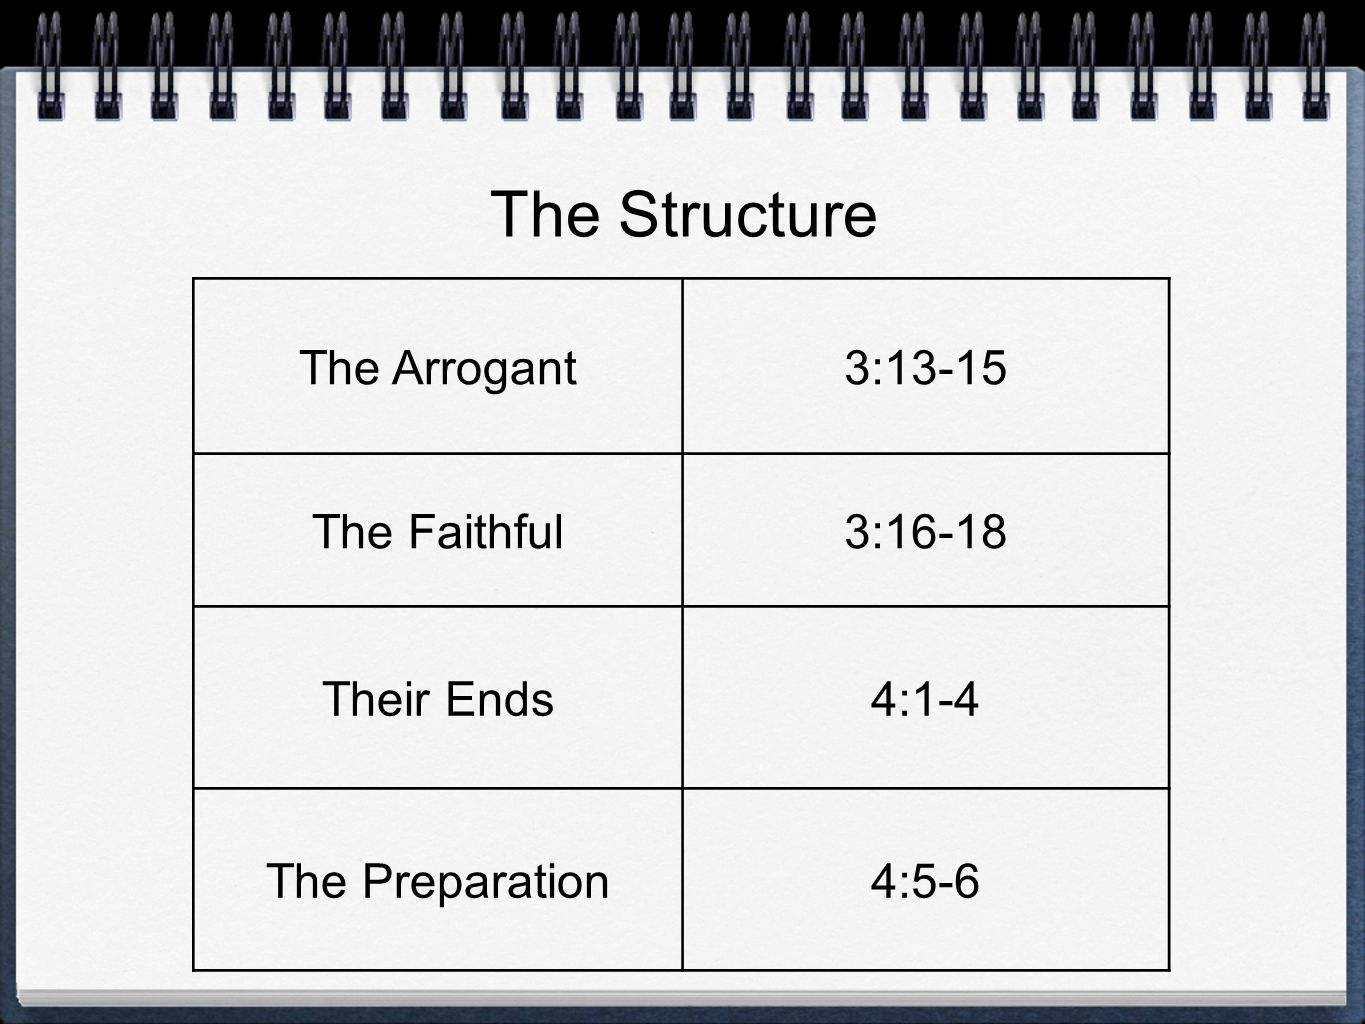 The Arrogant3:13-15 The Faithful3:16-18 Their Ends4:1-4 The Preparation4:5-6 The Structure